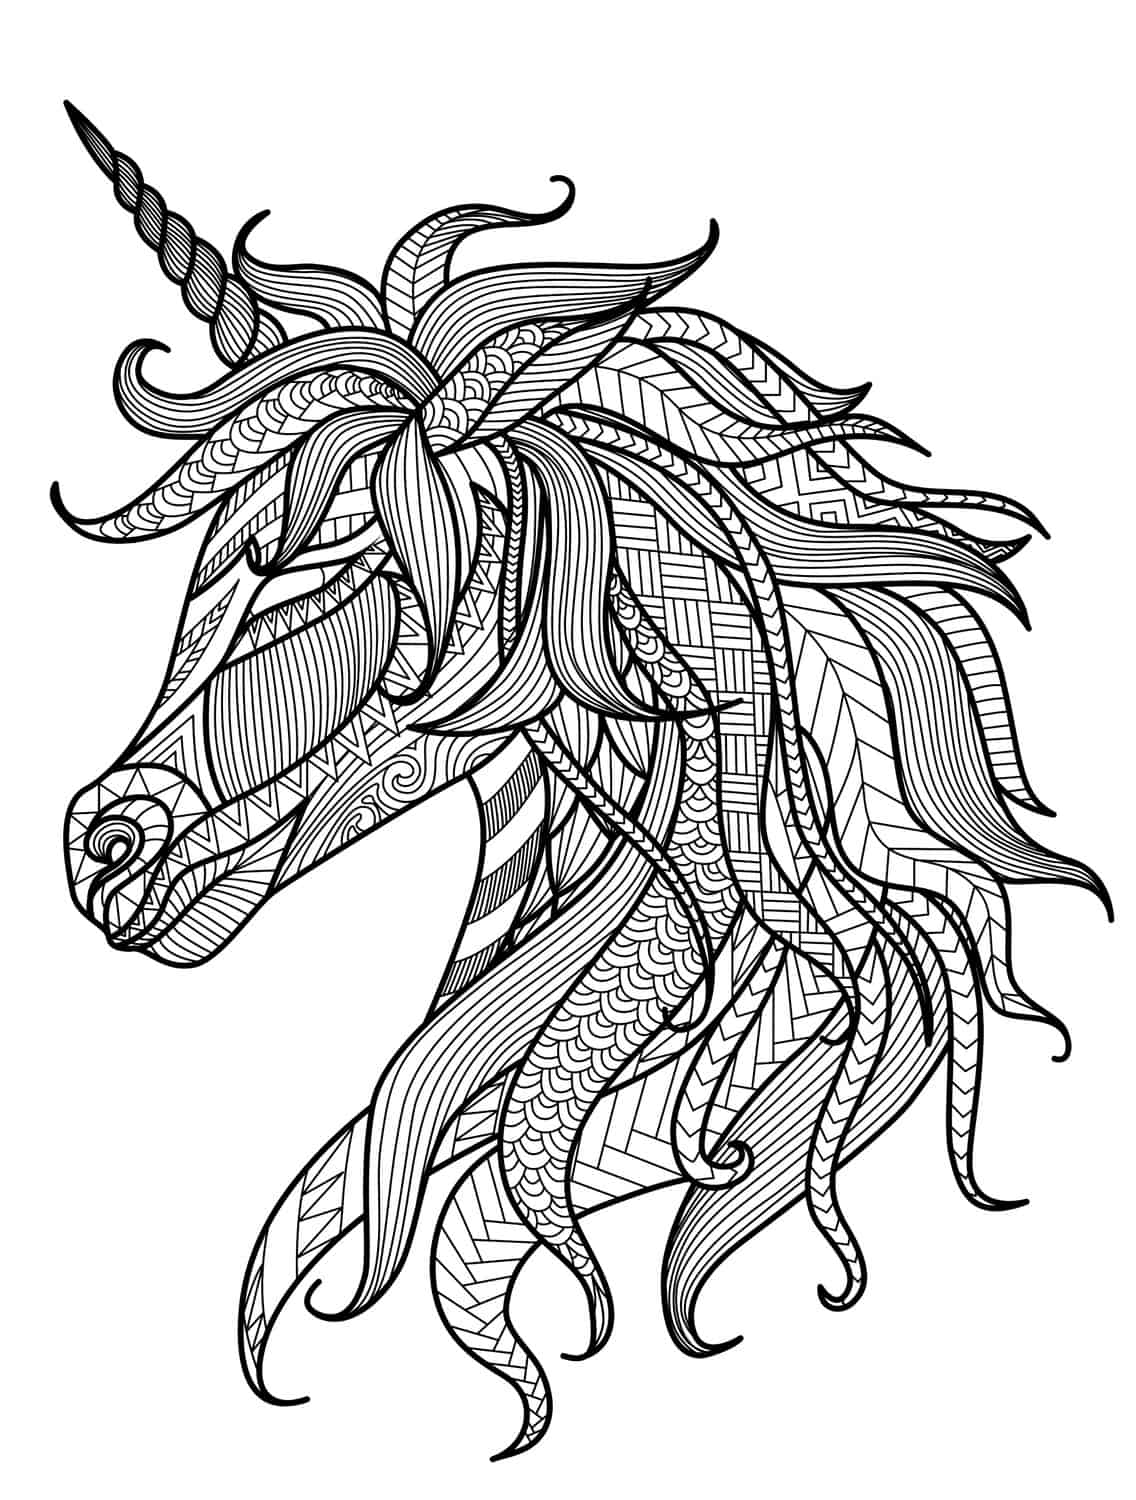 coloring picture unicorn free coloring pages coloringrocks unicorn picture coloring